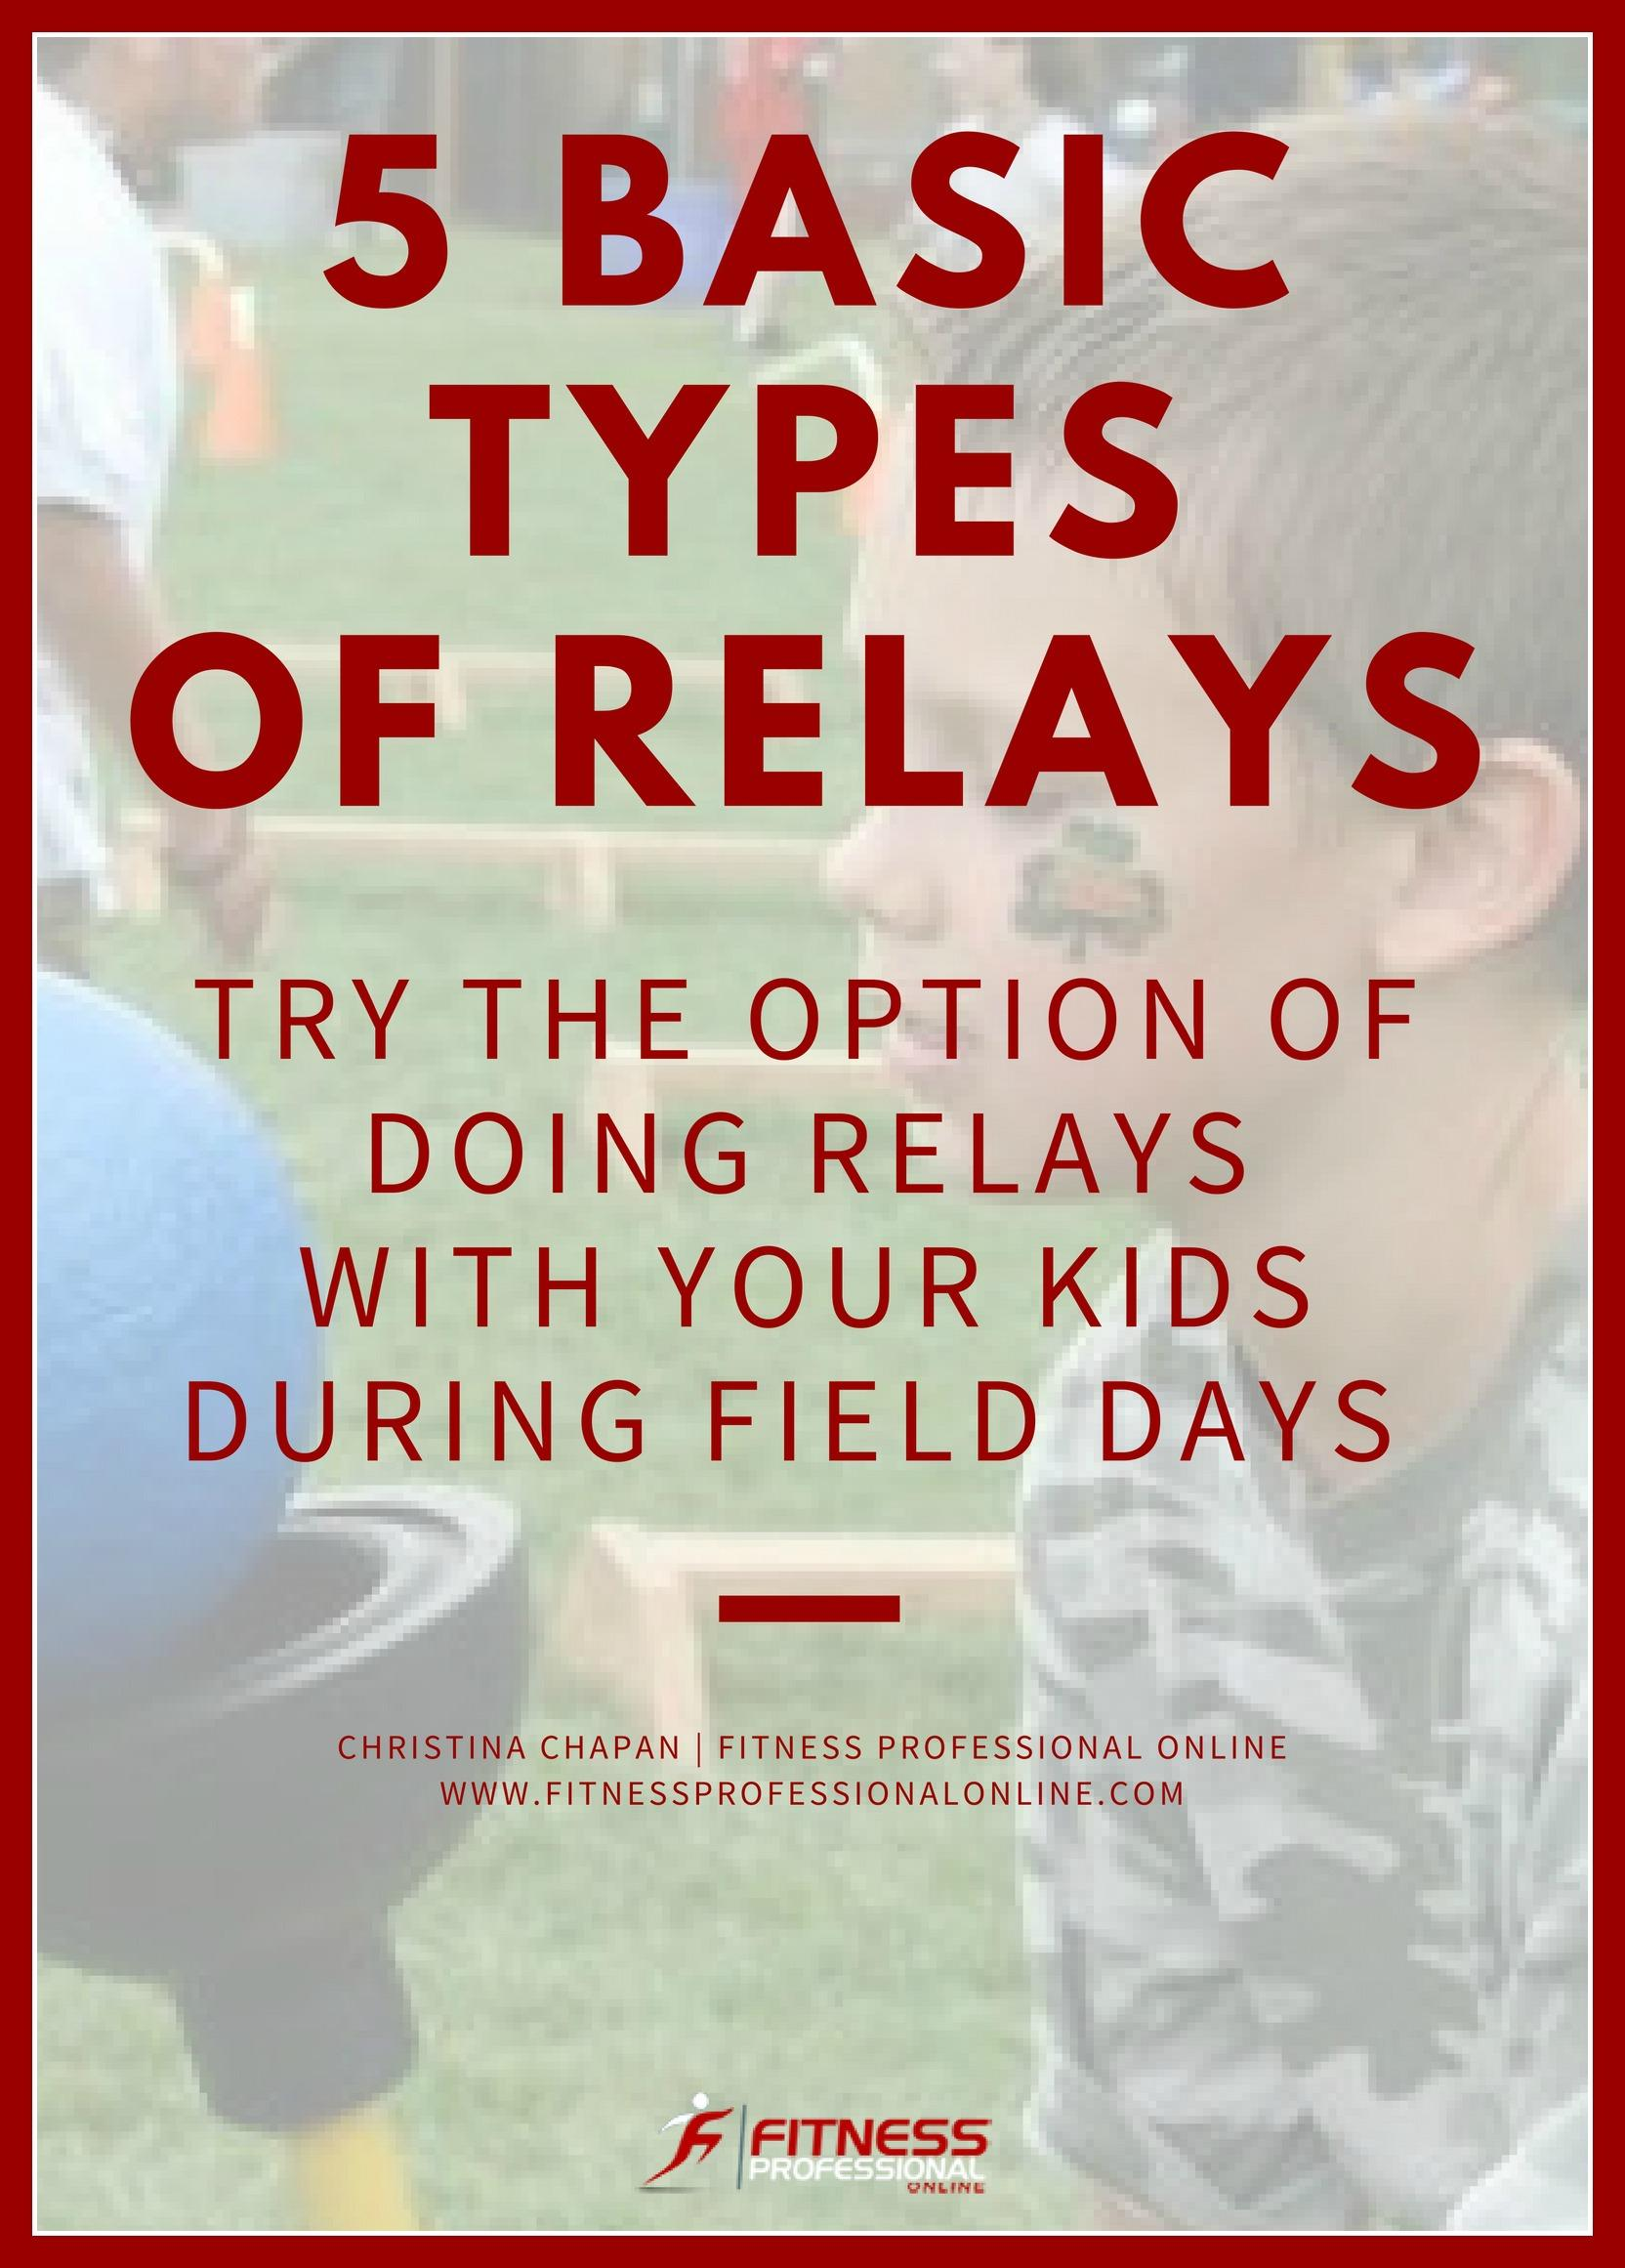 Try the option of doing relays with your kids during field days. They are a great finale to your fitness training sessions.